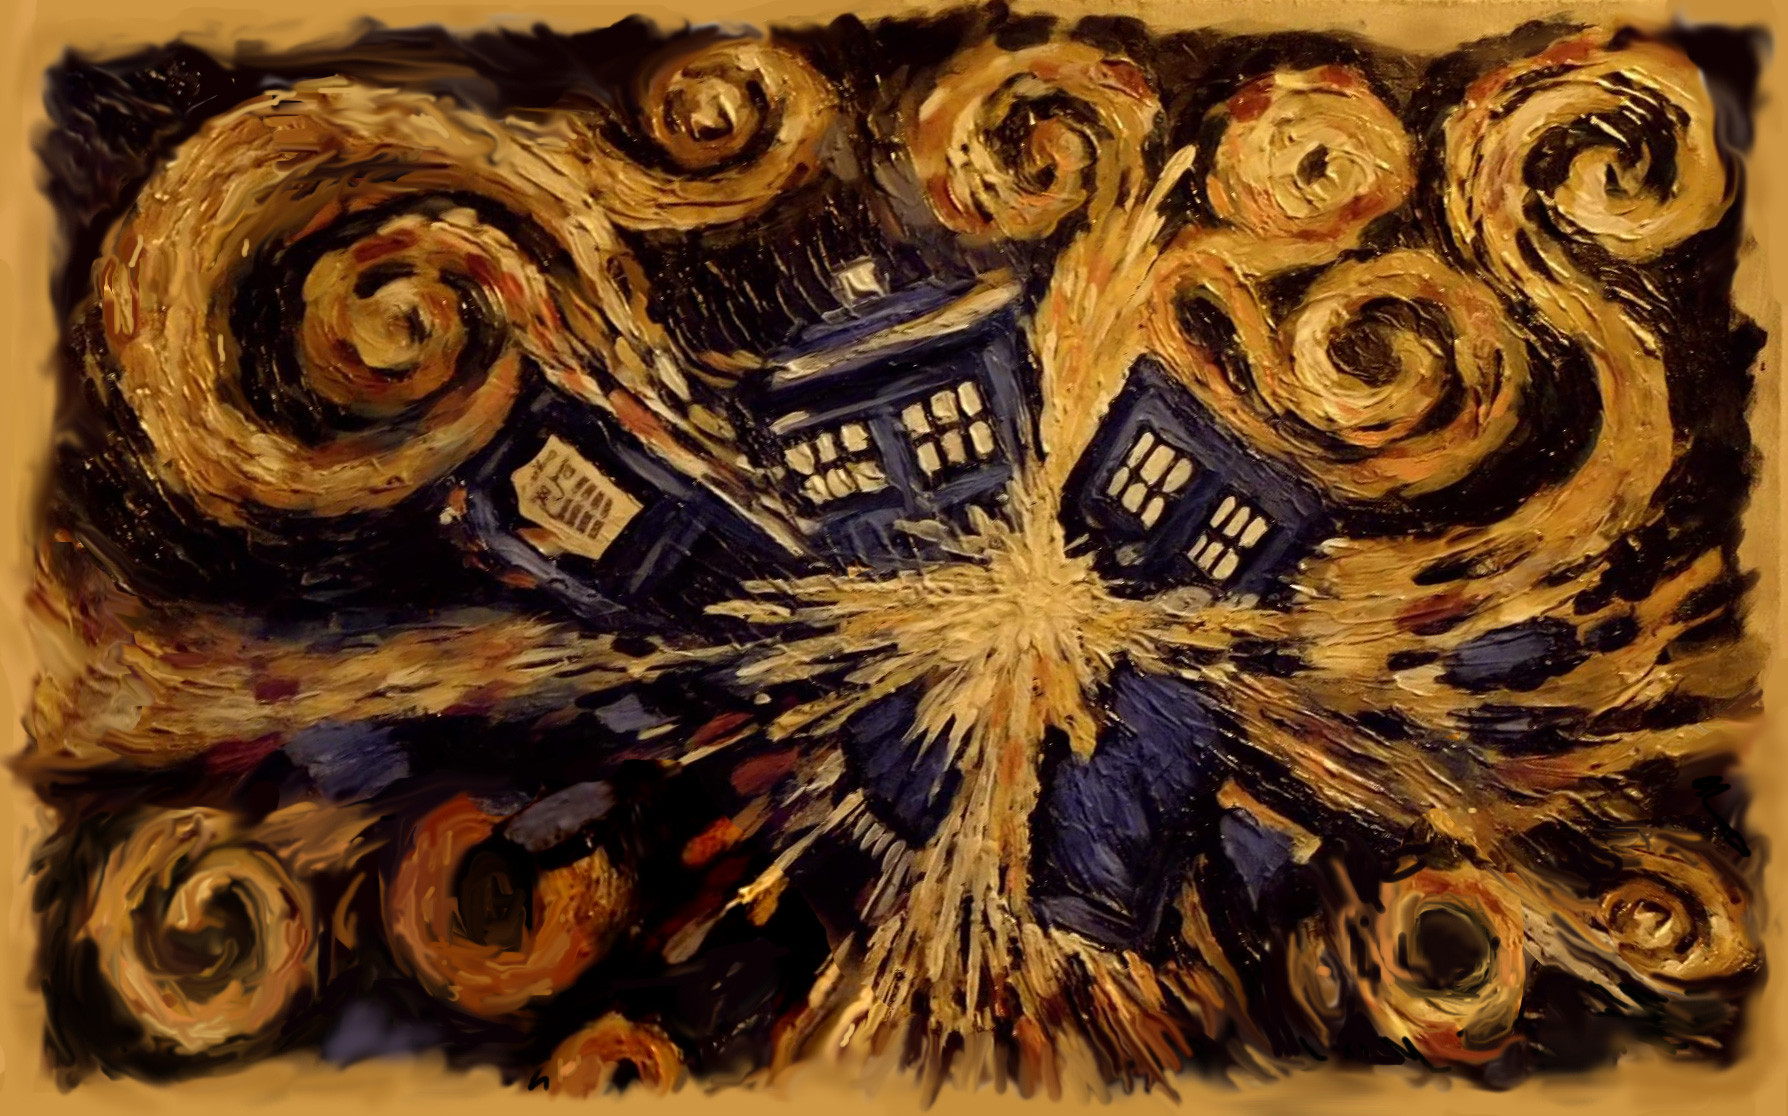 Doctor Who Tardis Wallpaper Van Gogh Images Pictures   Becuo 1788x1116